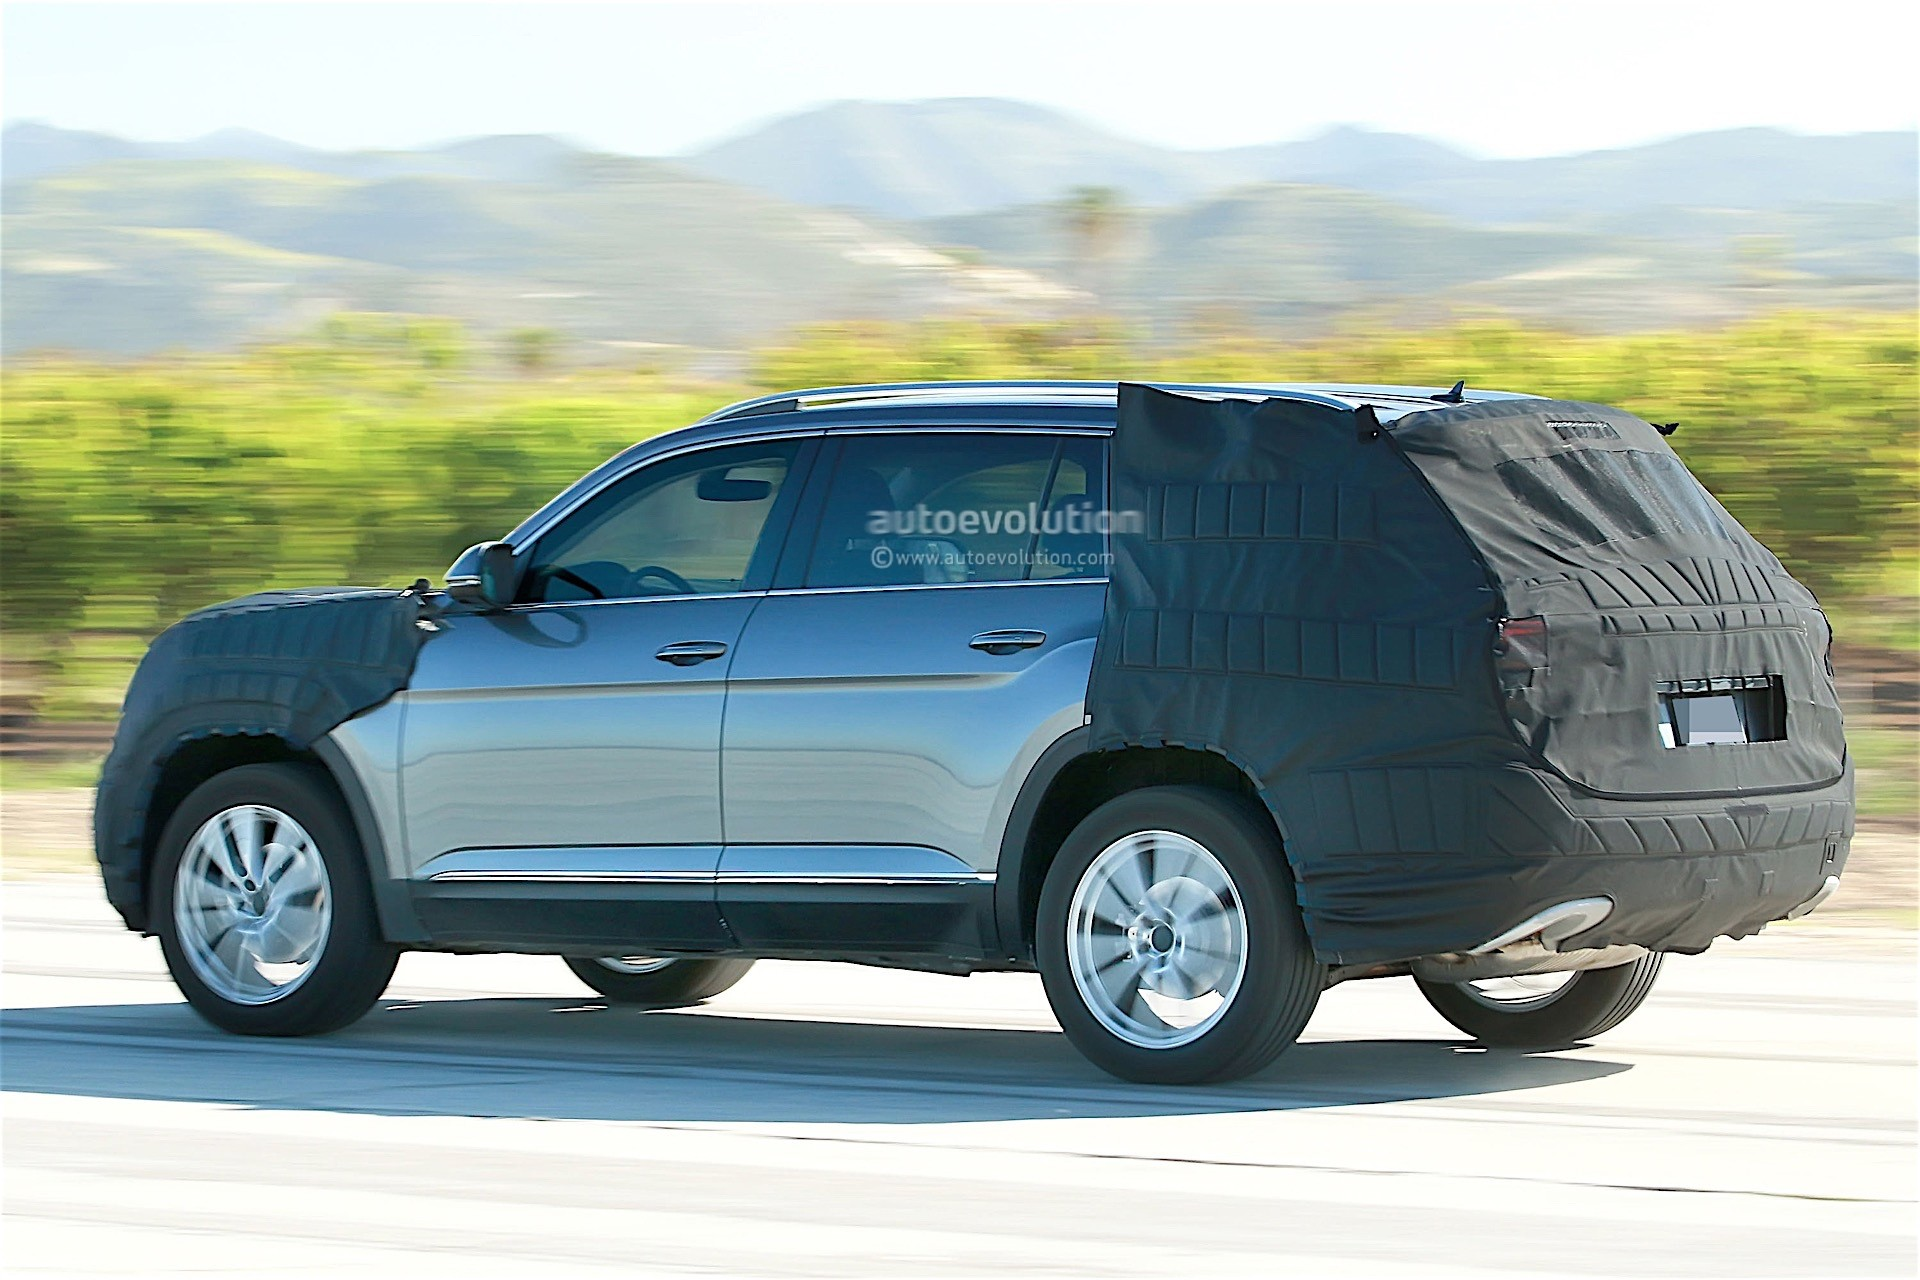 volkswagen testing a new suv with production body we think it 39 s the crossblue autoevolution. Black Bedroom Furniture Sets. Home Design Ideas